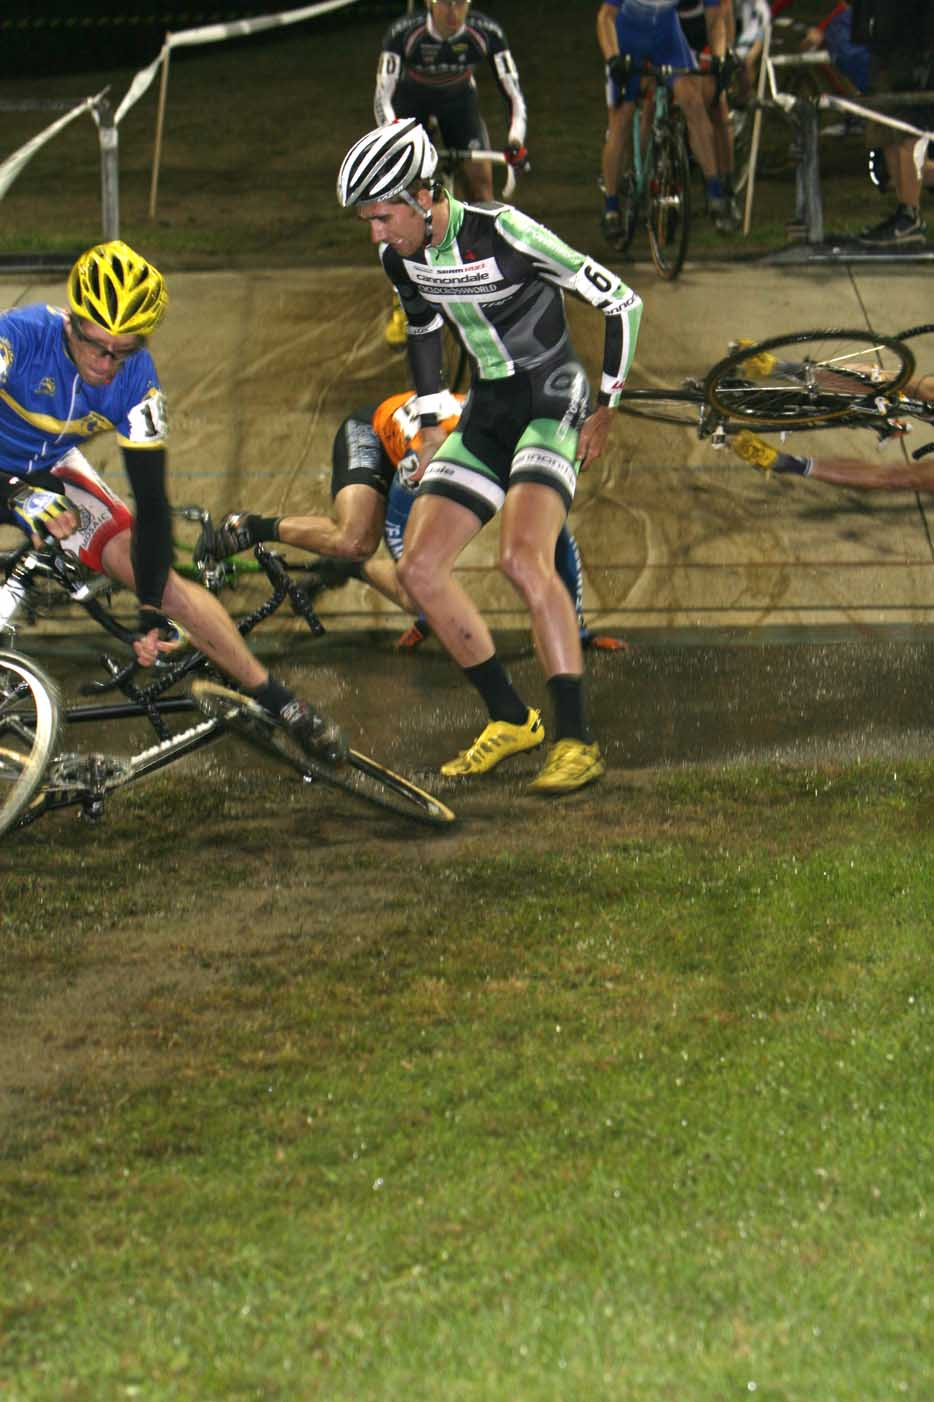 The first lap was carnage for the CXW team.